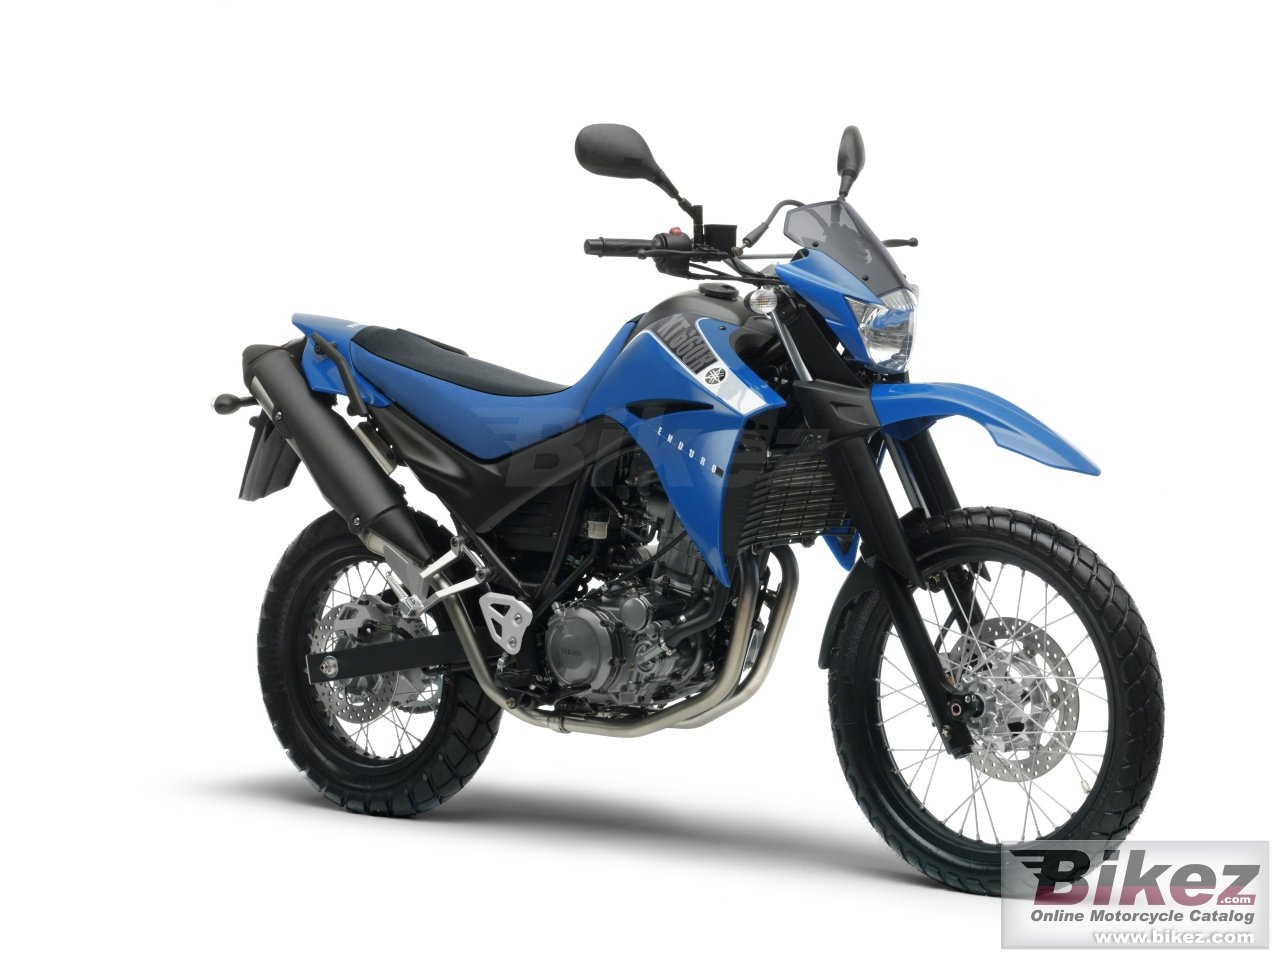 Big Yamaha xt 660r picture and wallpaper from Bikez.com